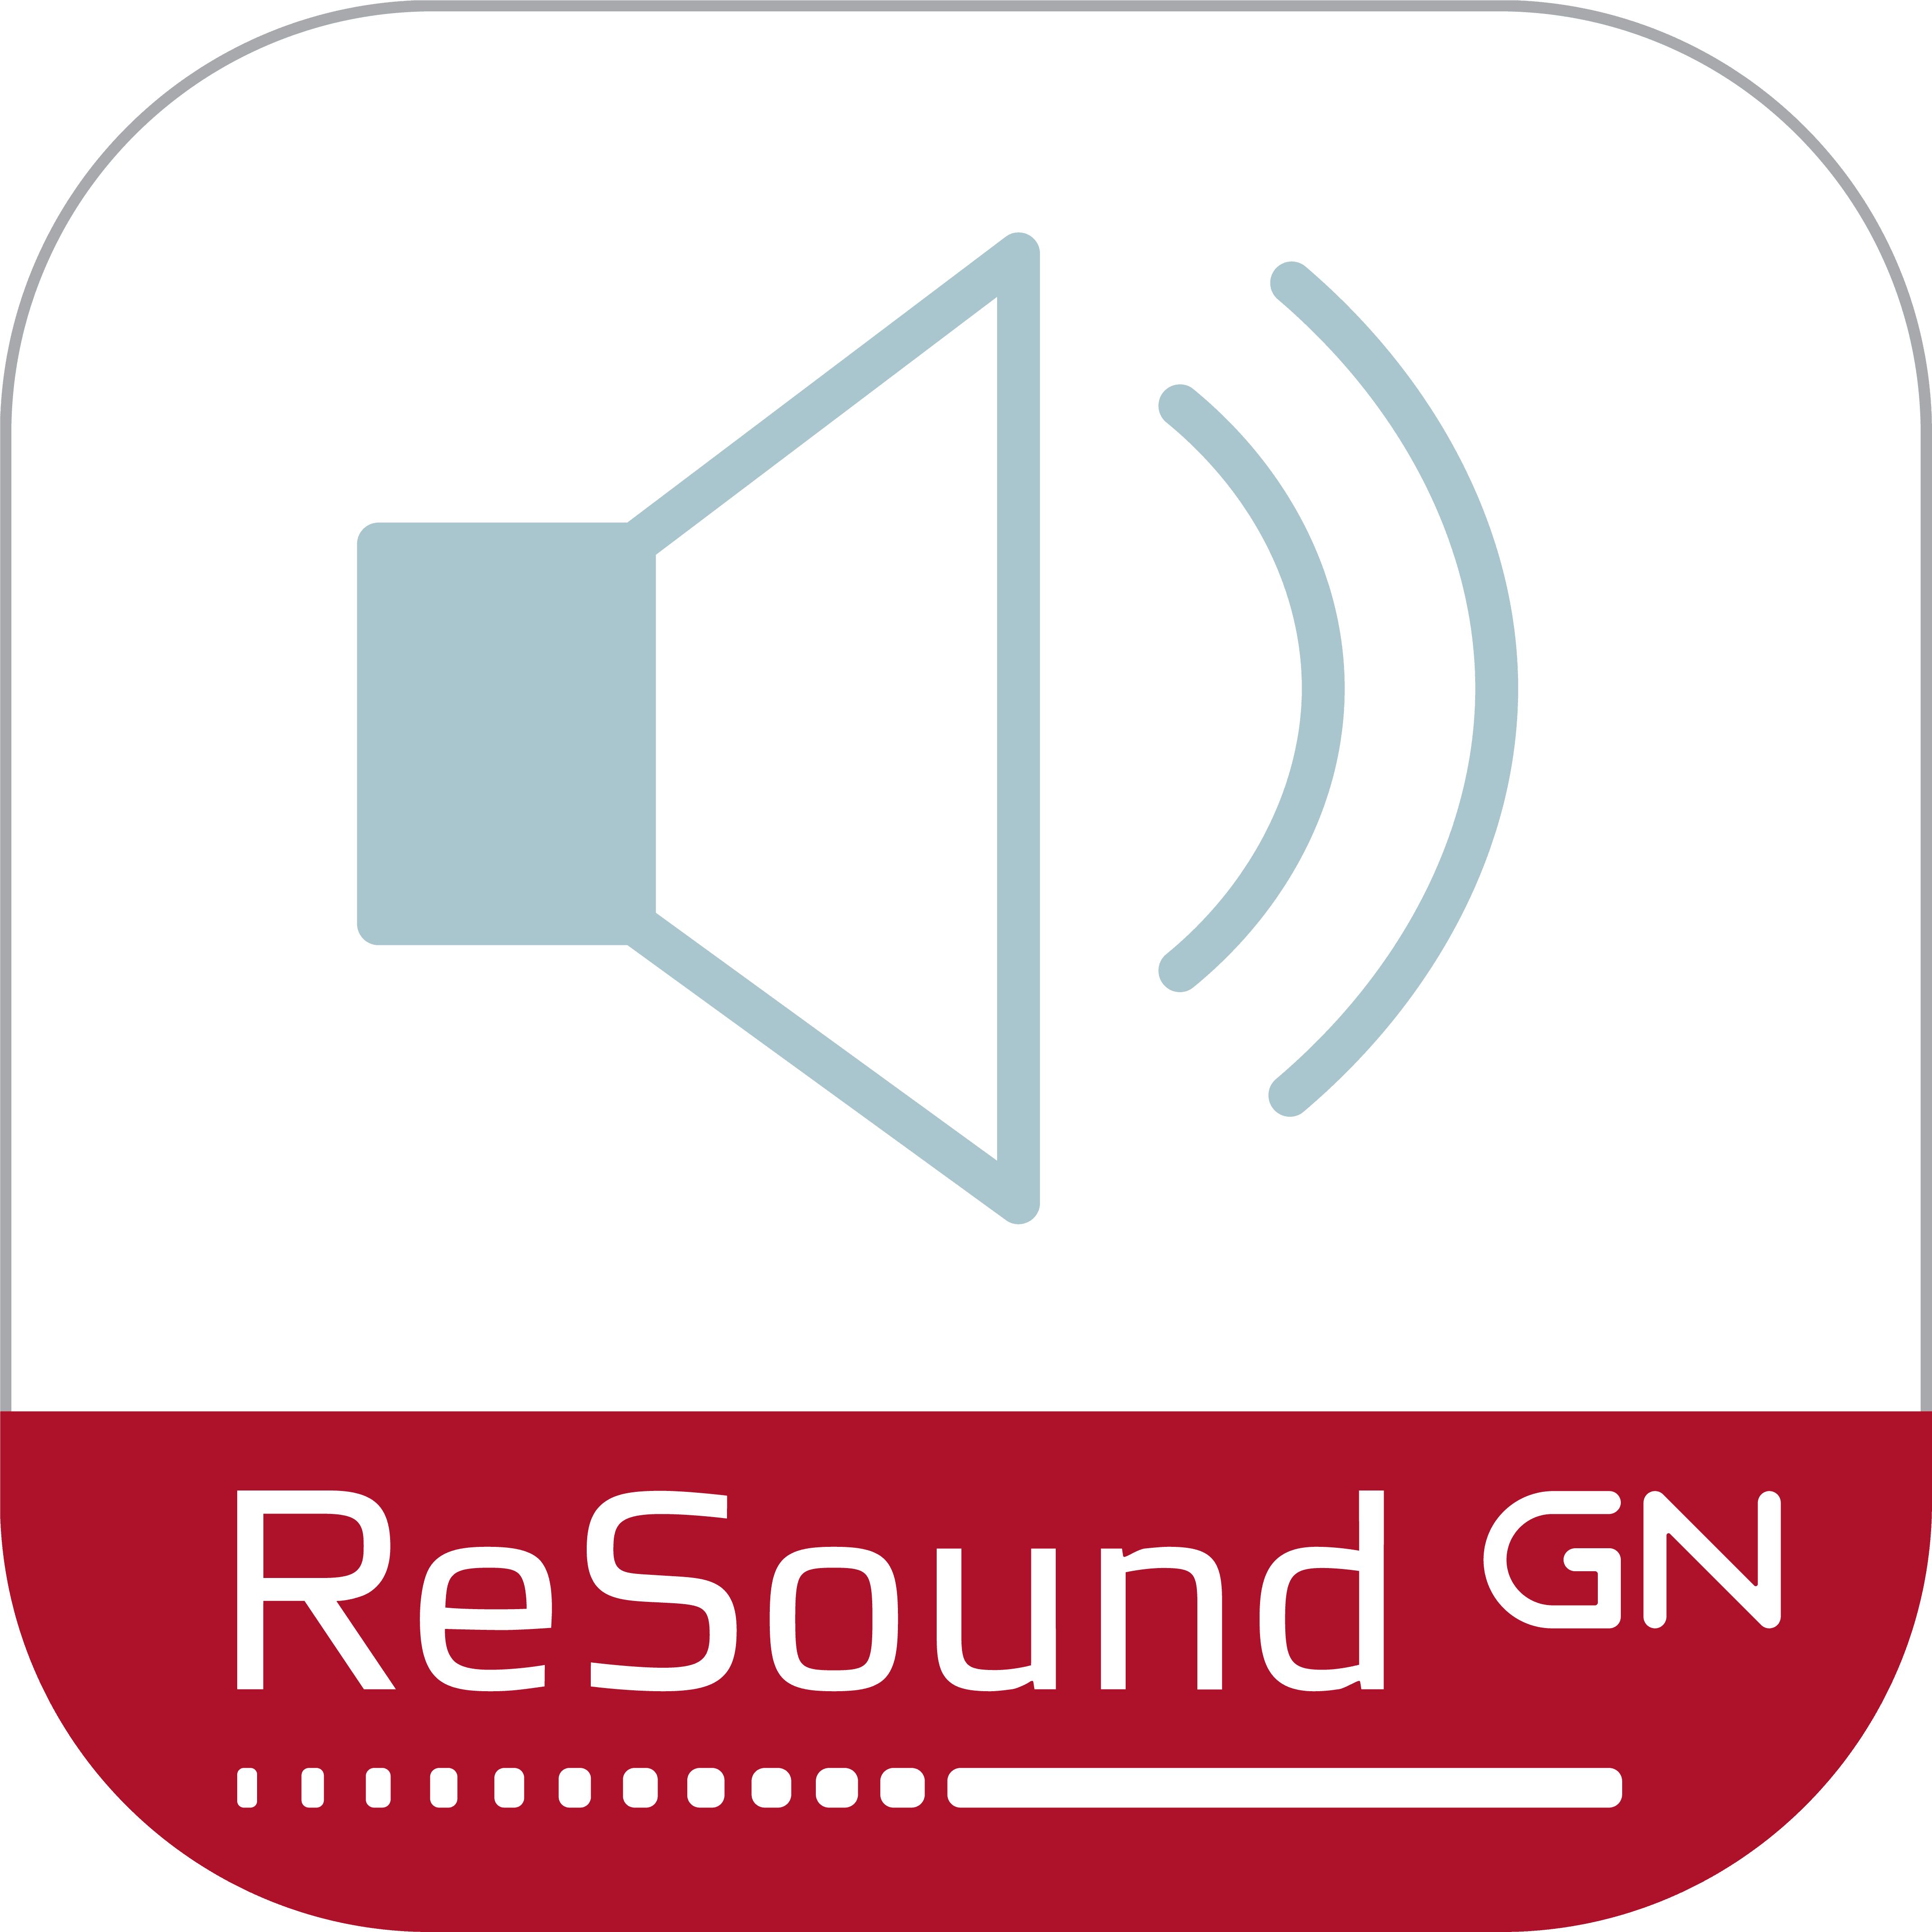 ReSound Remote app icon.